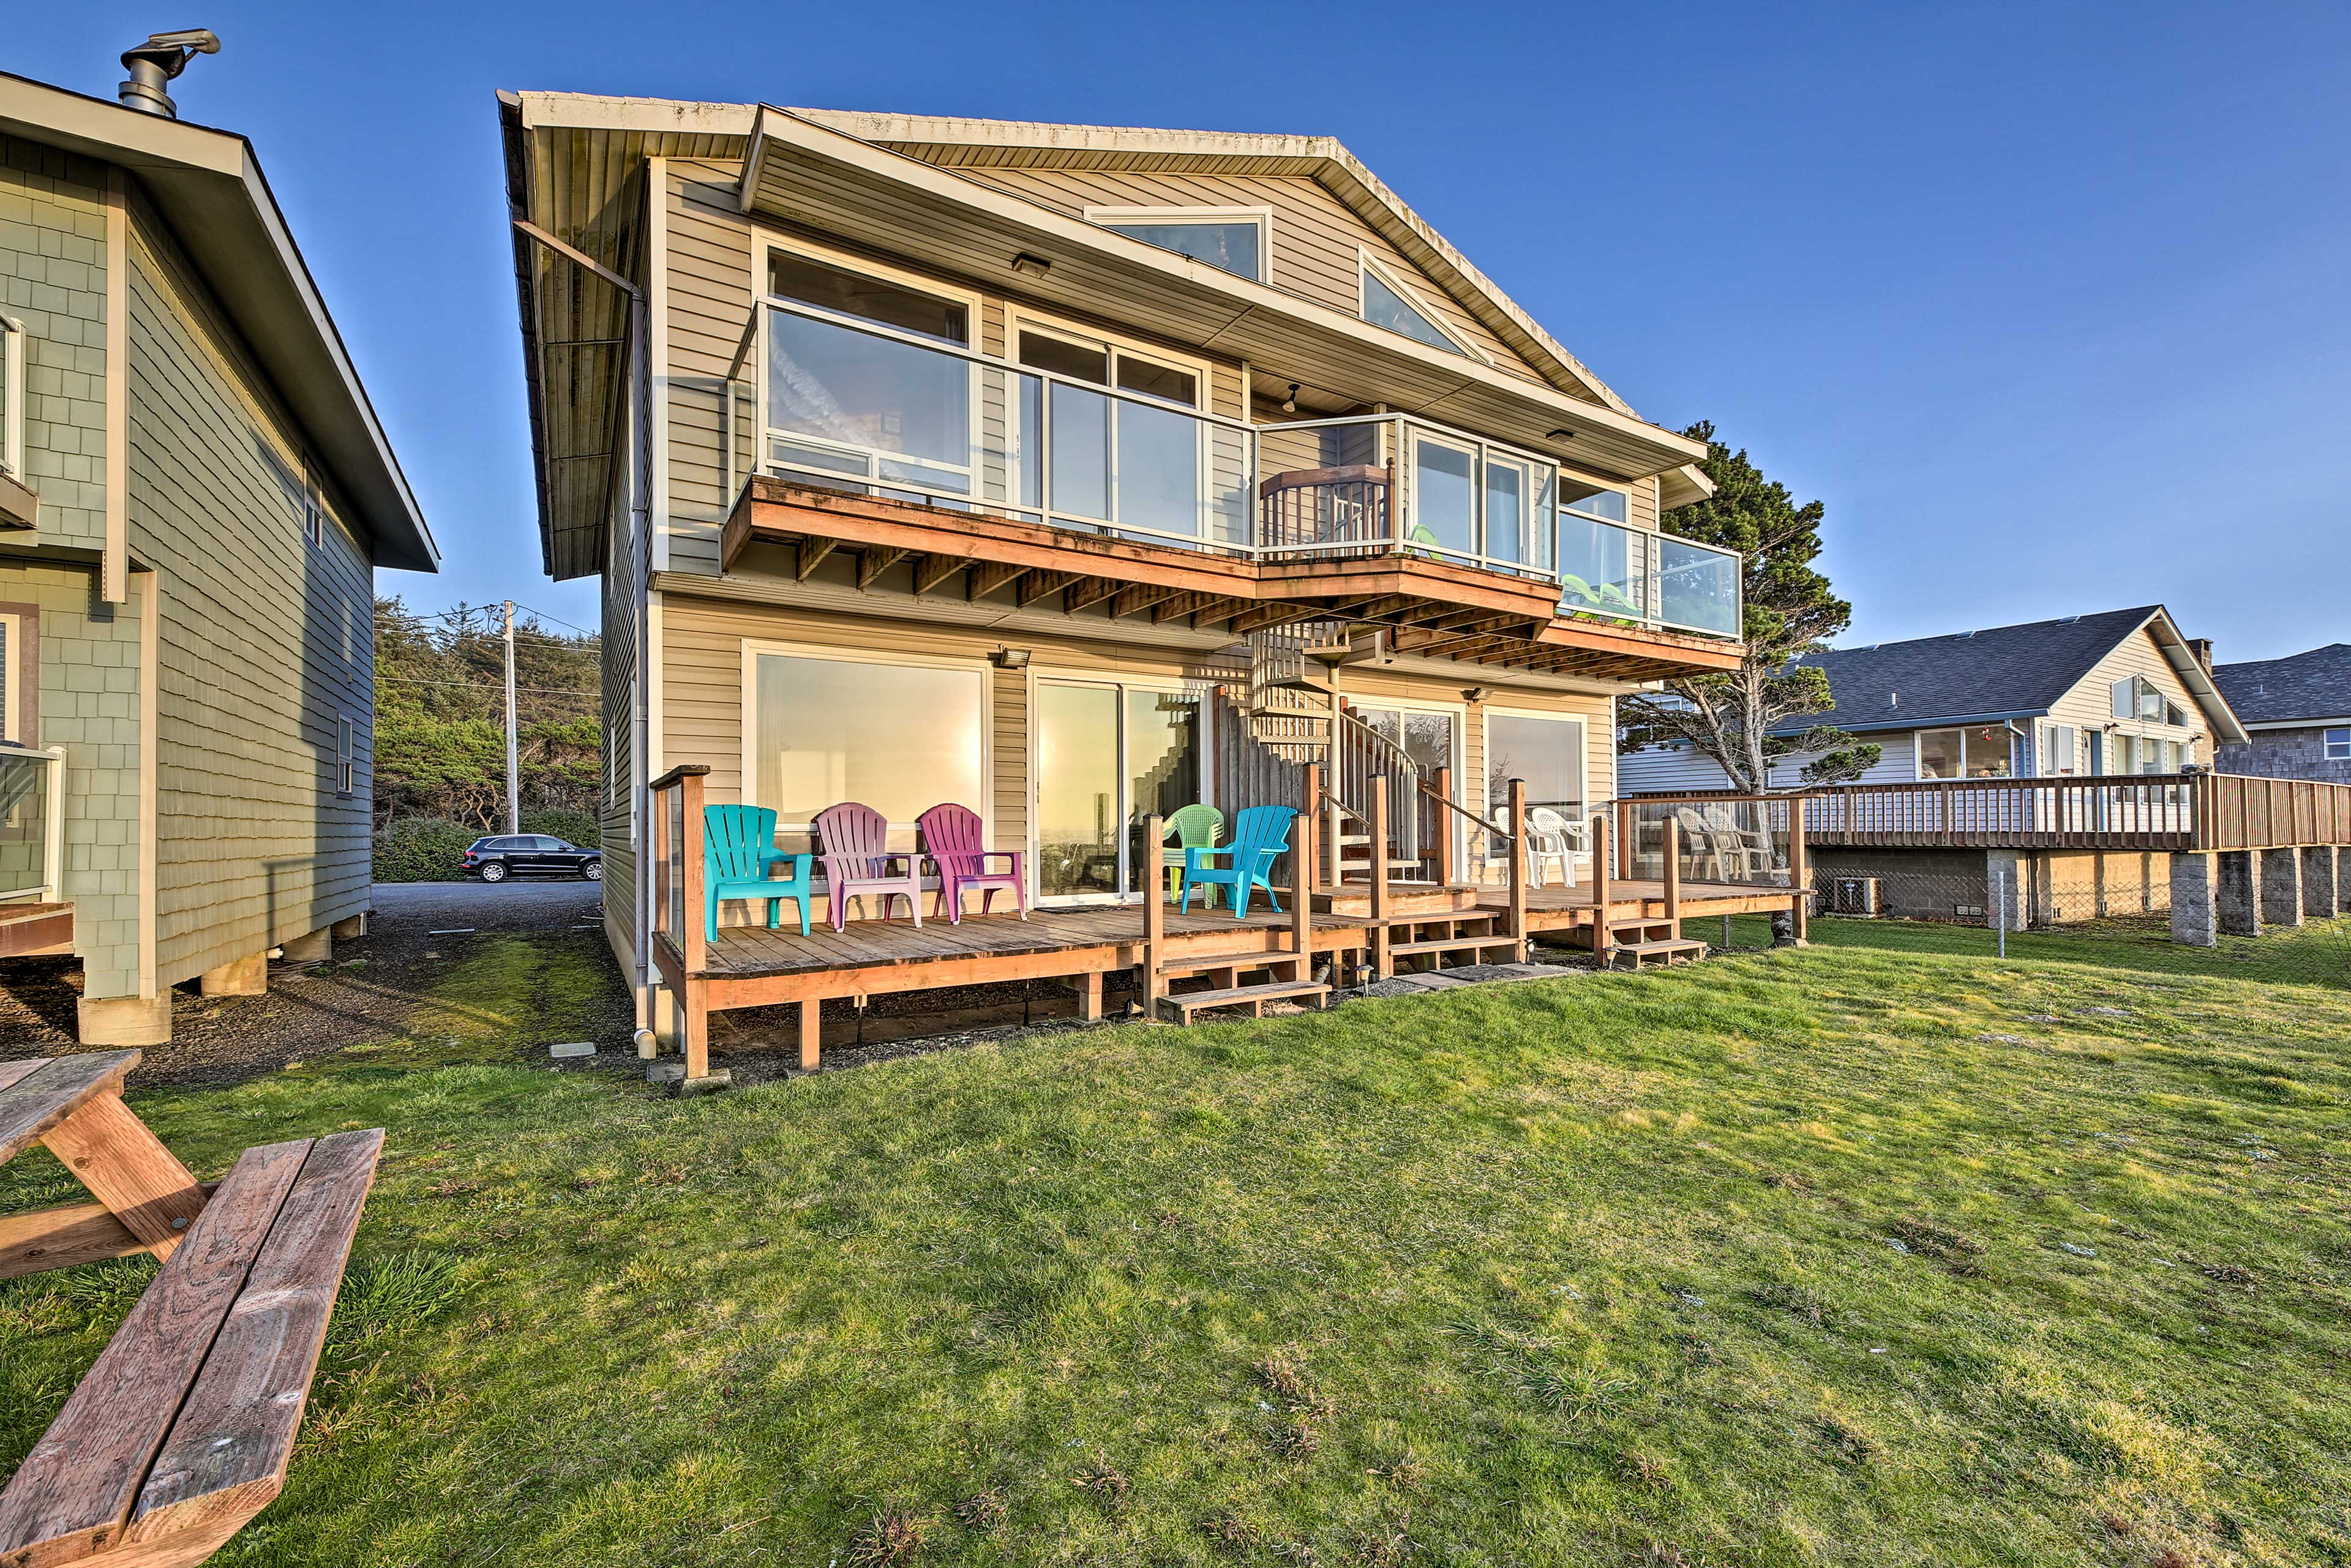 Watch sunset from the back balcony or deck off this vacation rental.